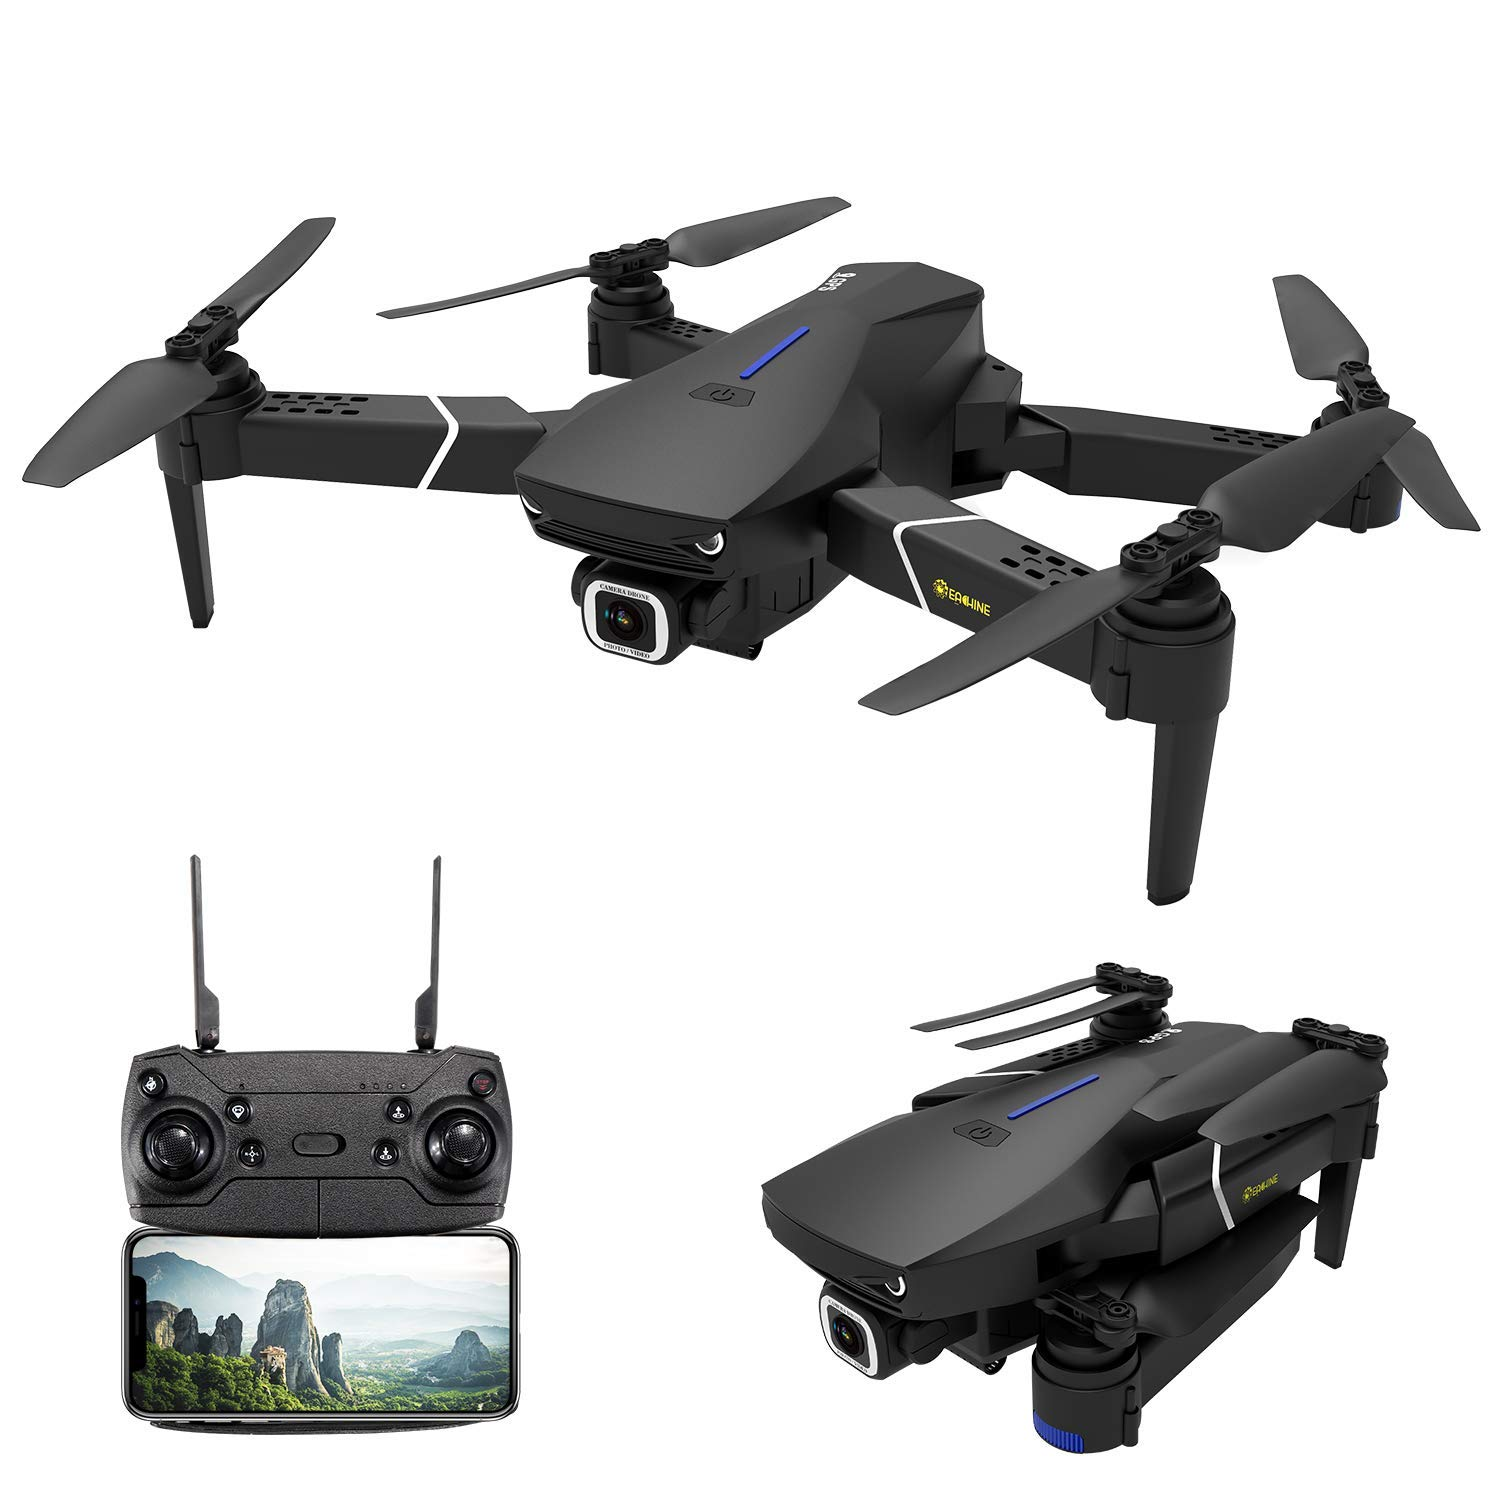 GPS Drone with 4K Camera for Adults,EACHINE E520S 5G WiFi FPV Live Video Foldable Drone GPS Return Home 1200Mah 16mins Flight Time 120° Wide Angle HD Camera RC Drone Quadcopter for Kids Beginners by EACHINE